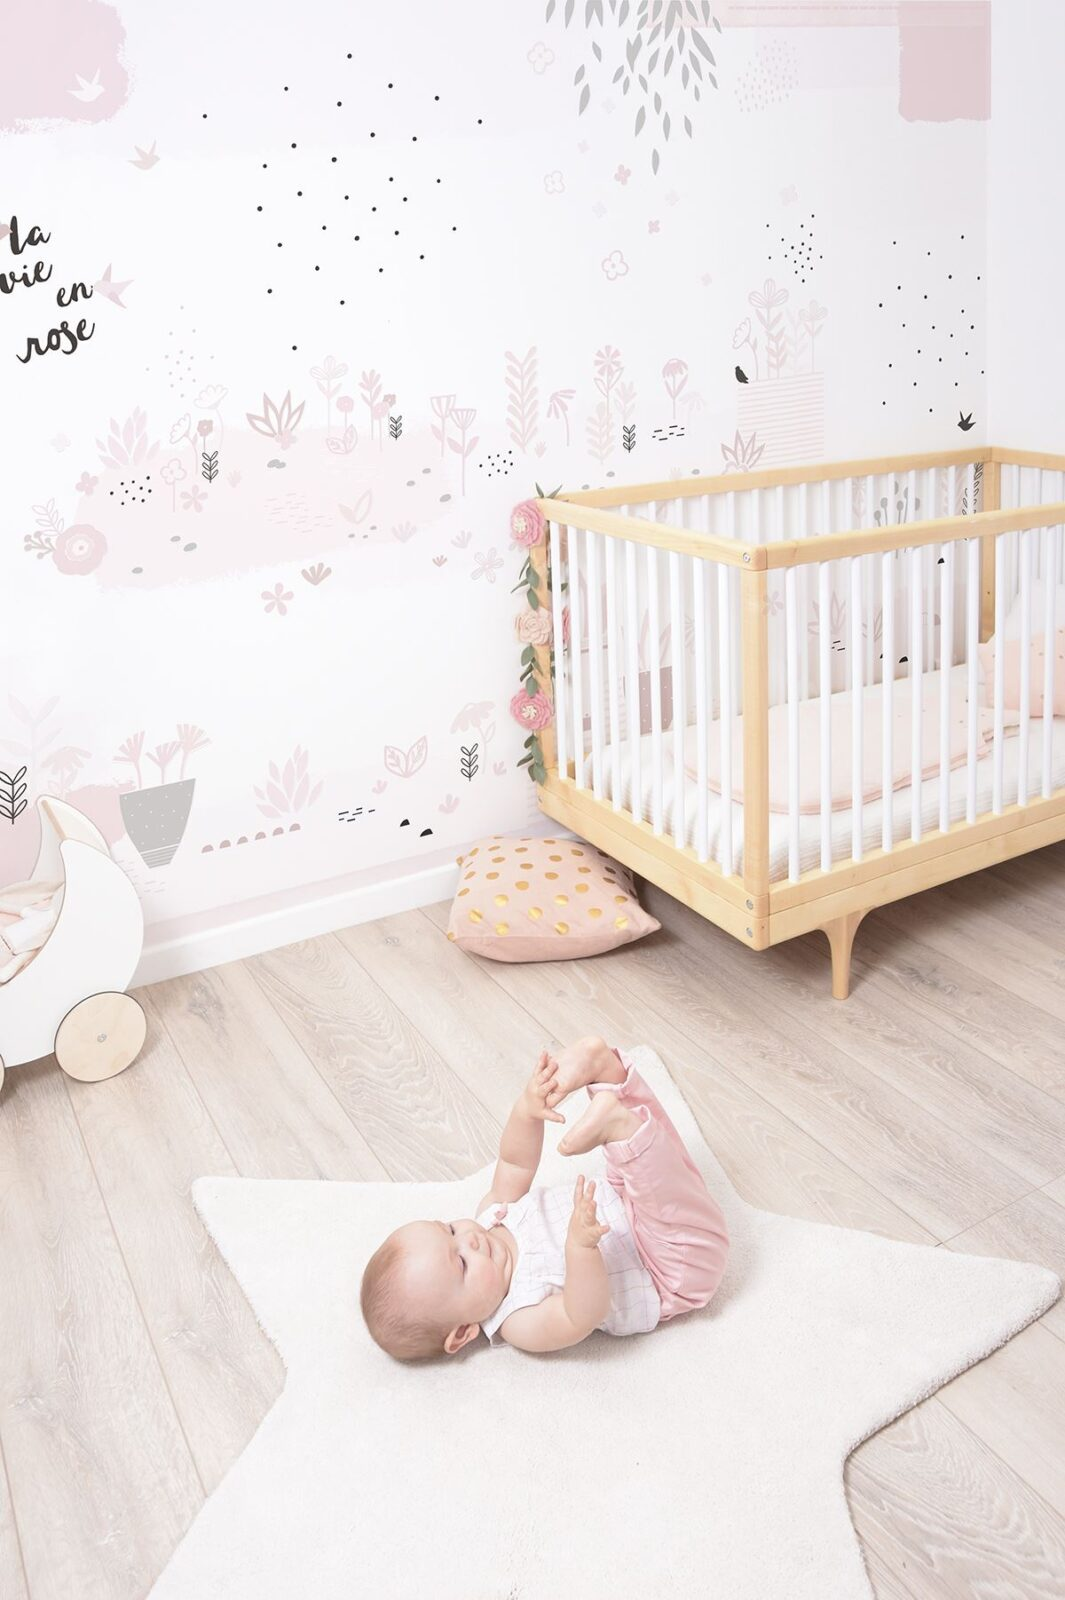 Nursery with a cot